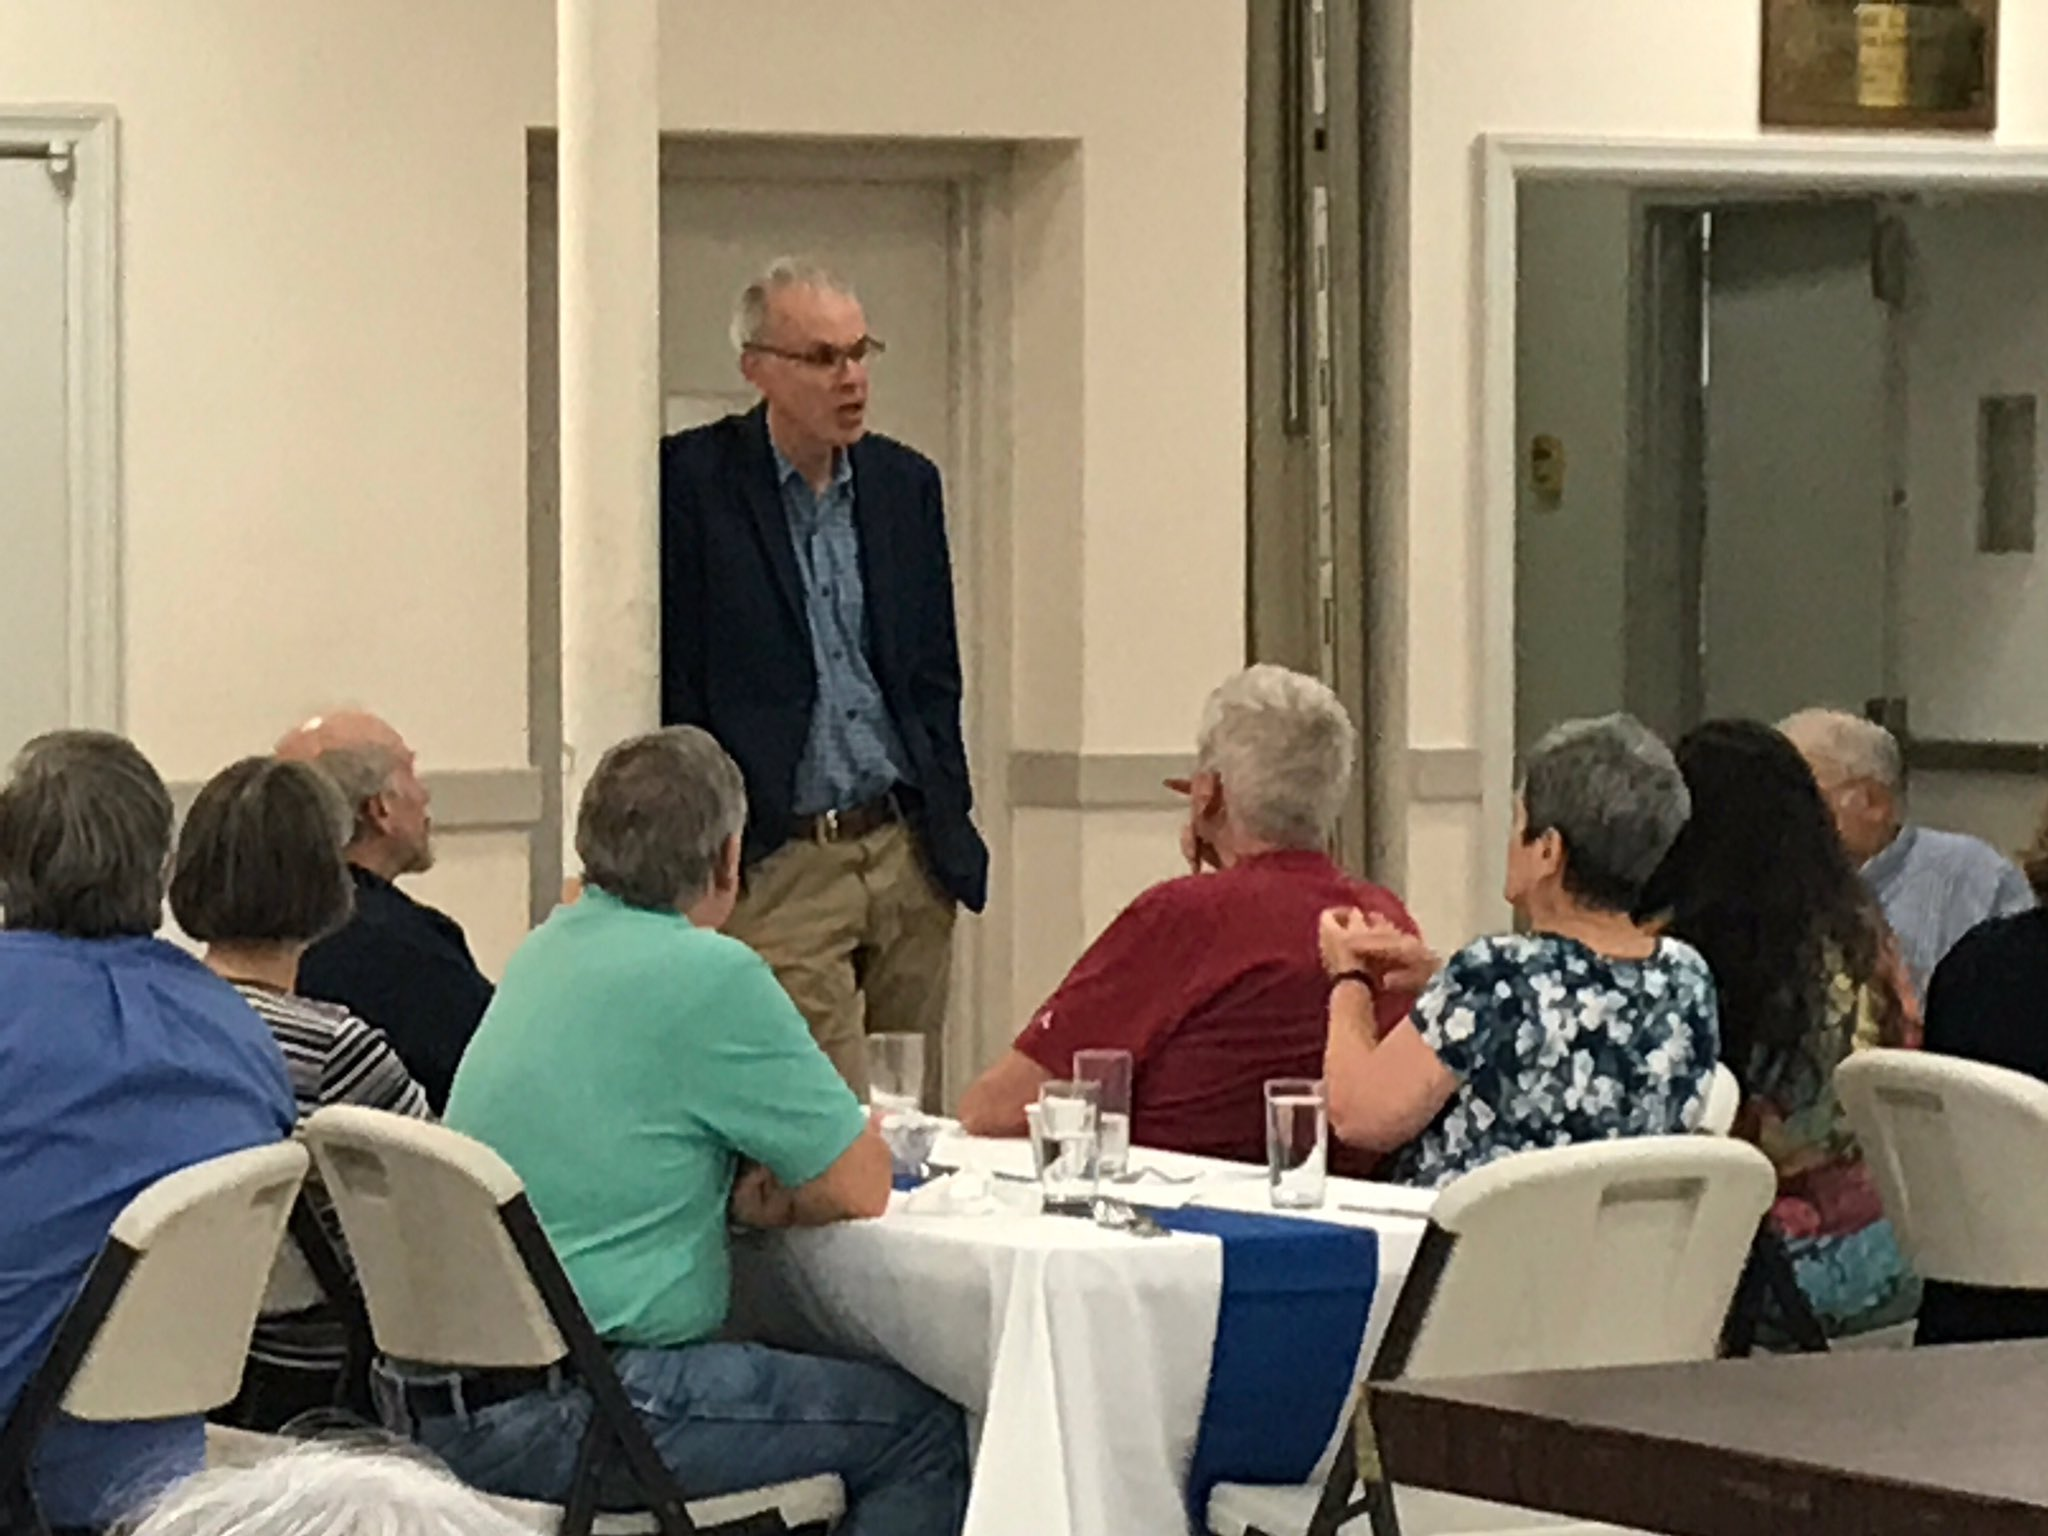 """.@billmckibben """"happy to be with his fellow United Methodists"""" ahead of the #climatemarch at Caretakers conference https://t.co/CSfWpNYwZ1"""